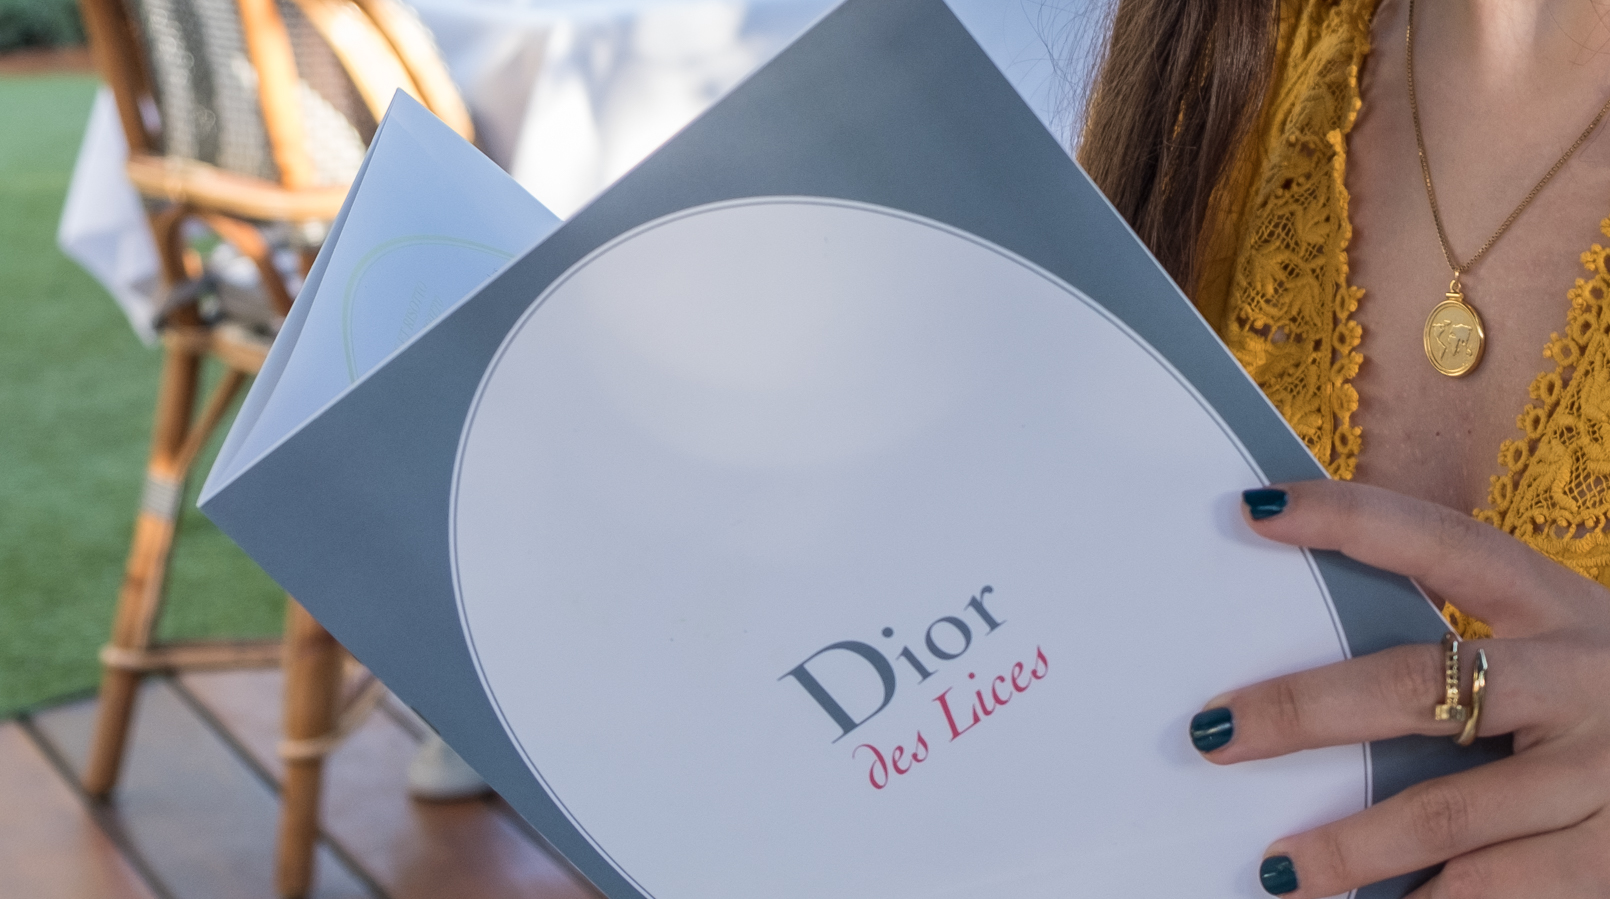 Le Fashionaire All you need to know about dining in Dior Des Lices in Saint Tropez menu restaurant dior des lices saint tropez 0681 EN1